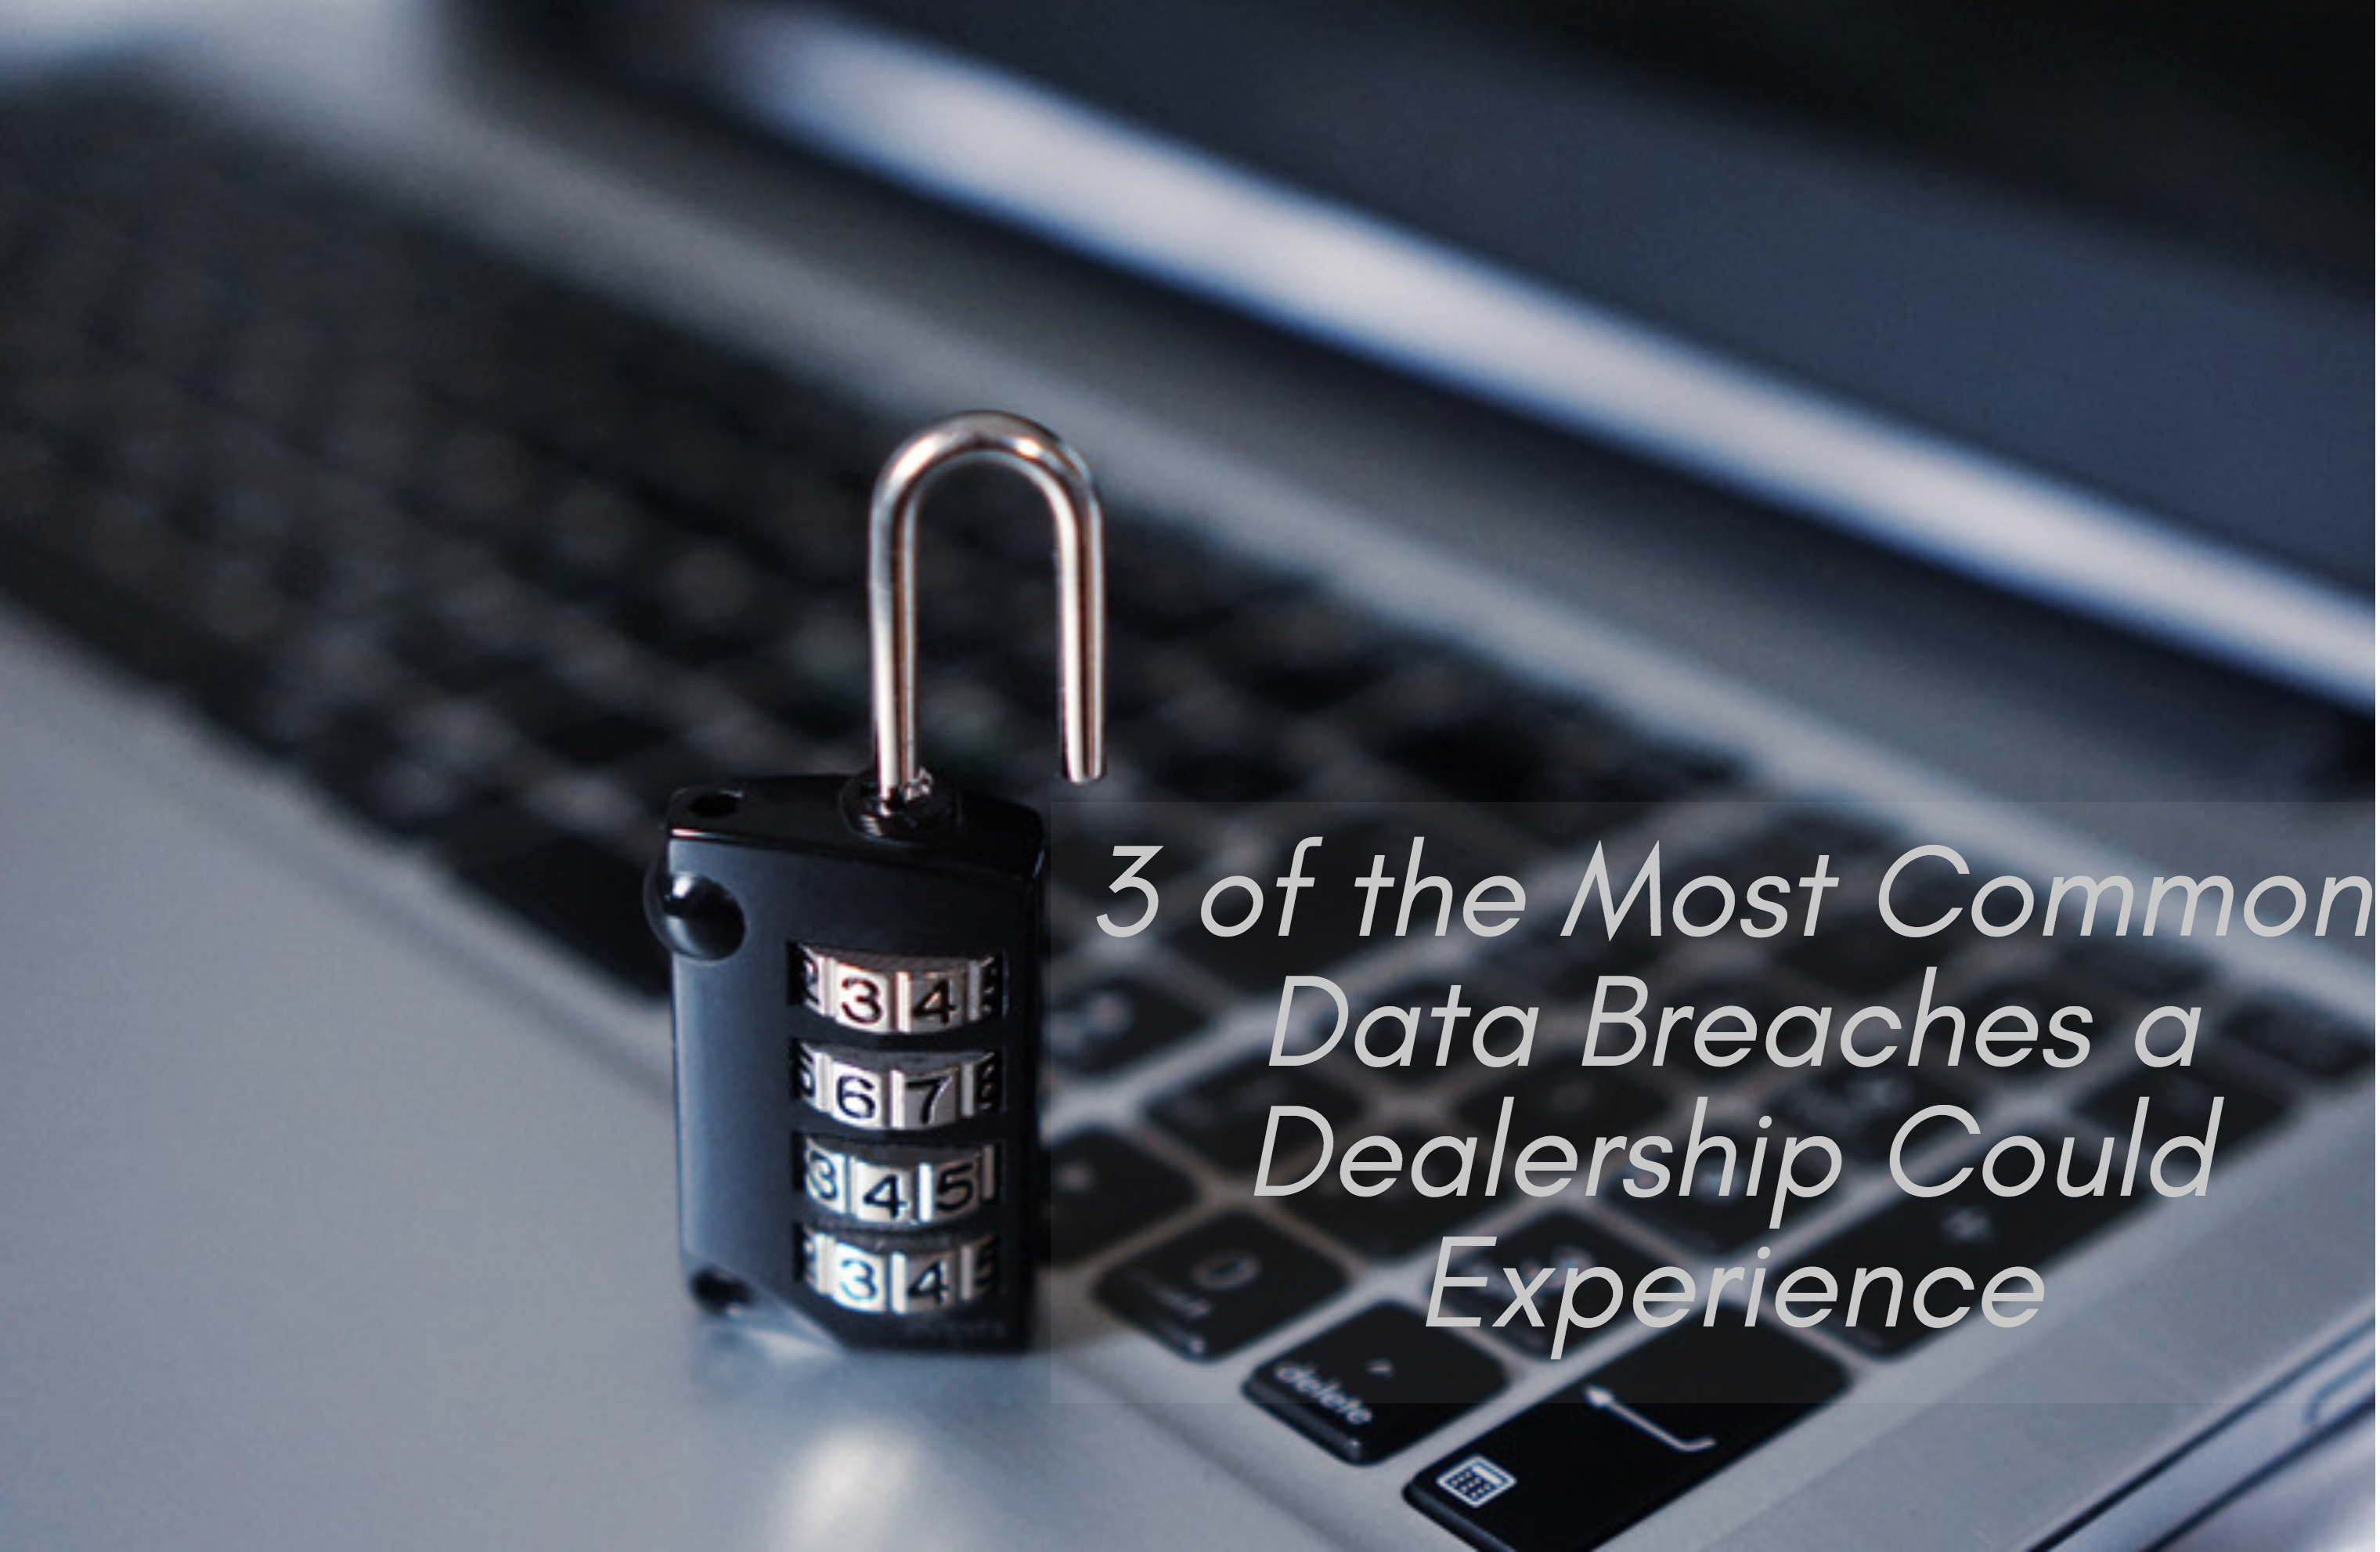 3 of the Most Common Data Breaches a Dealership Could Experience